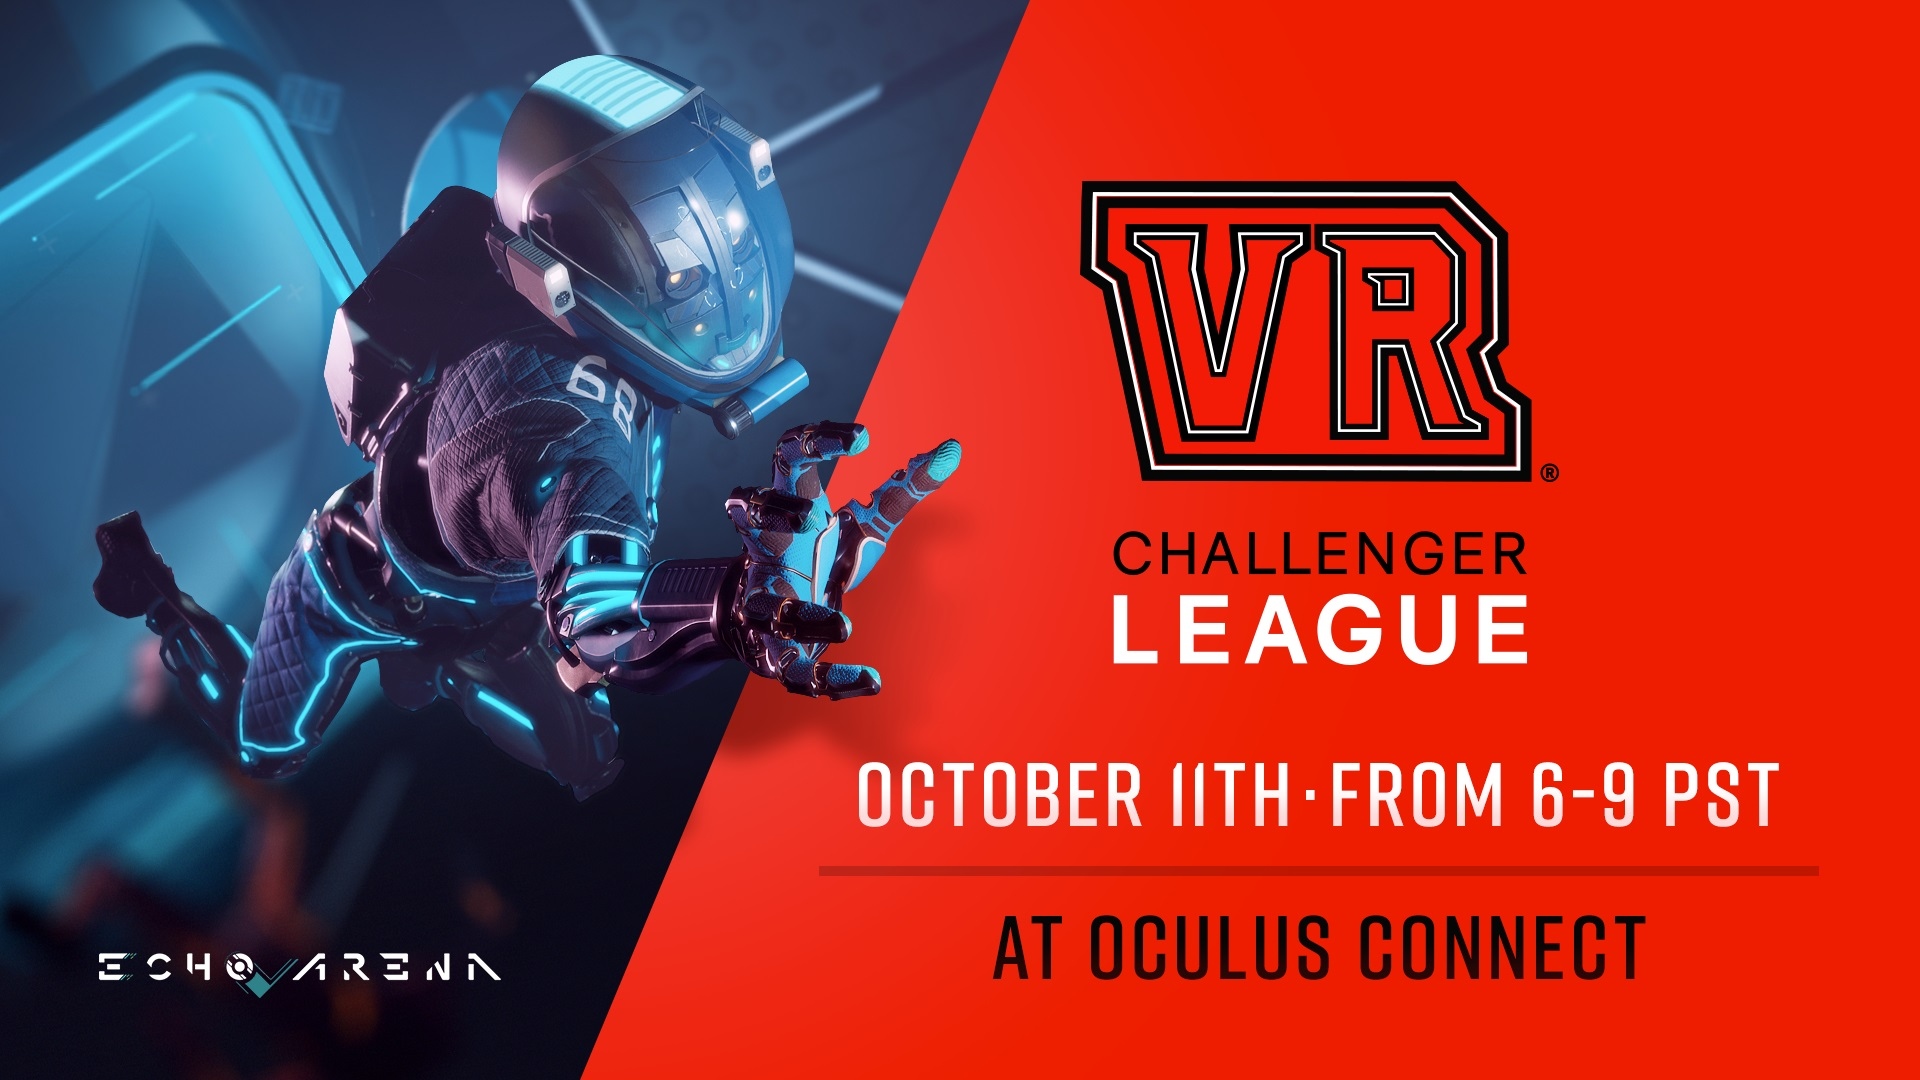 Oculus Holding World's First VR esports Regionals On October 11th